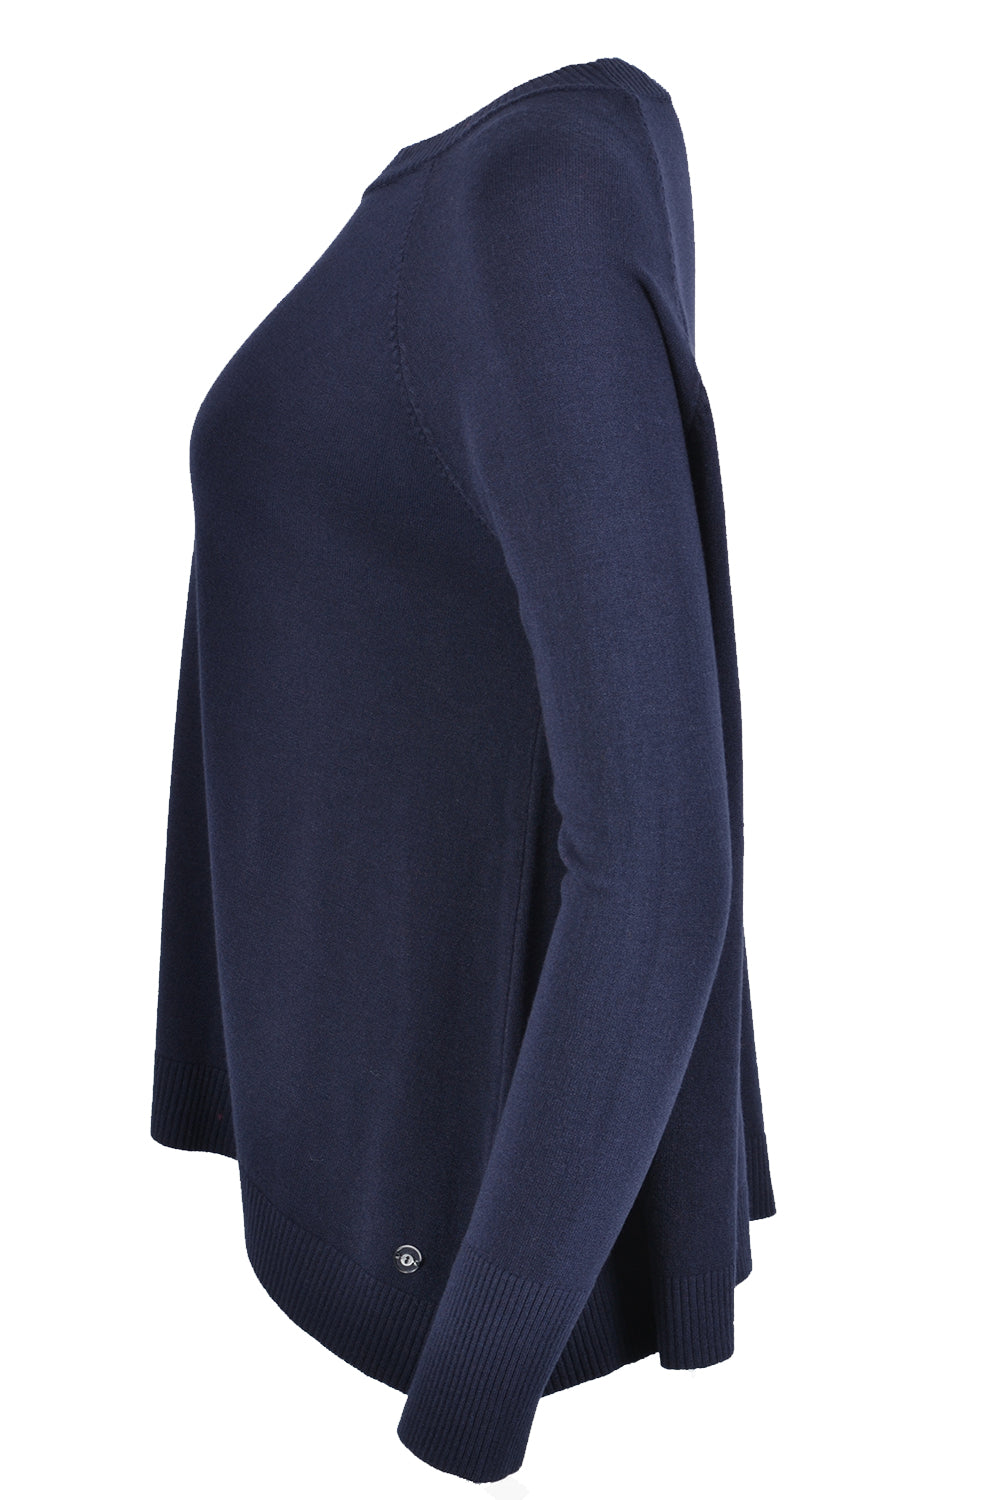 Ottod'Ame Round Neck Jumper Navy